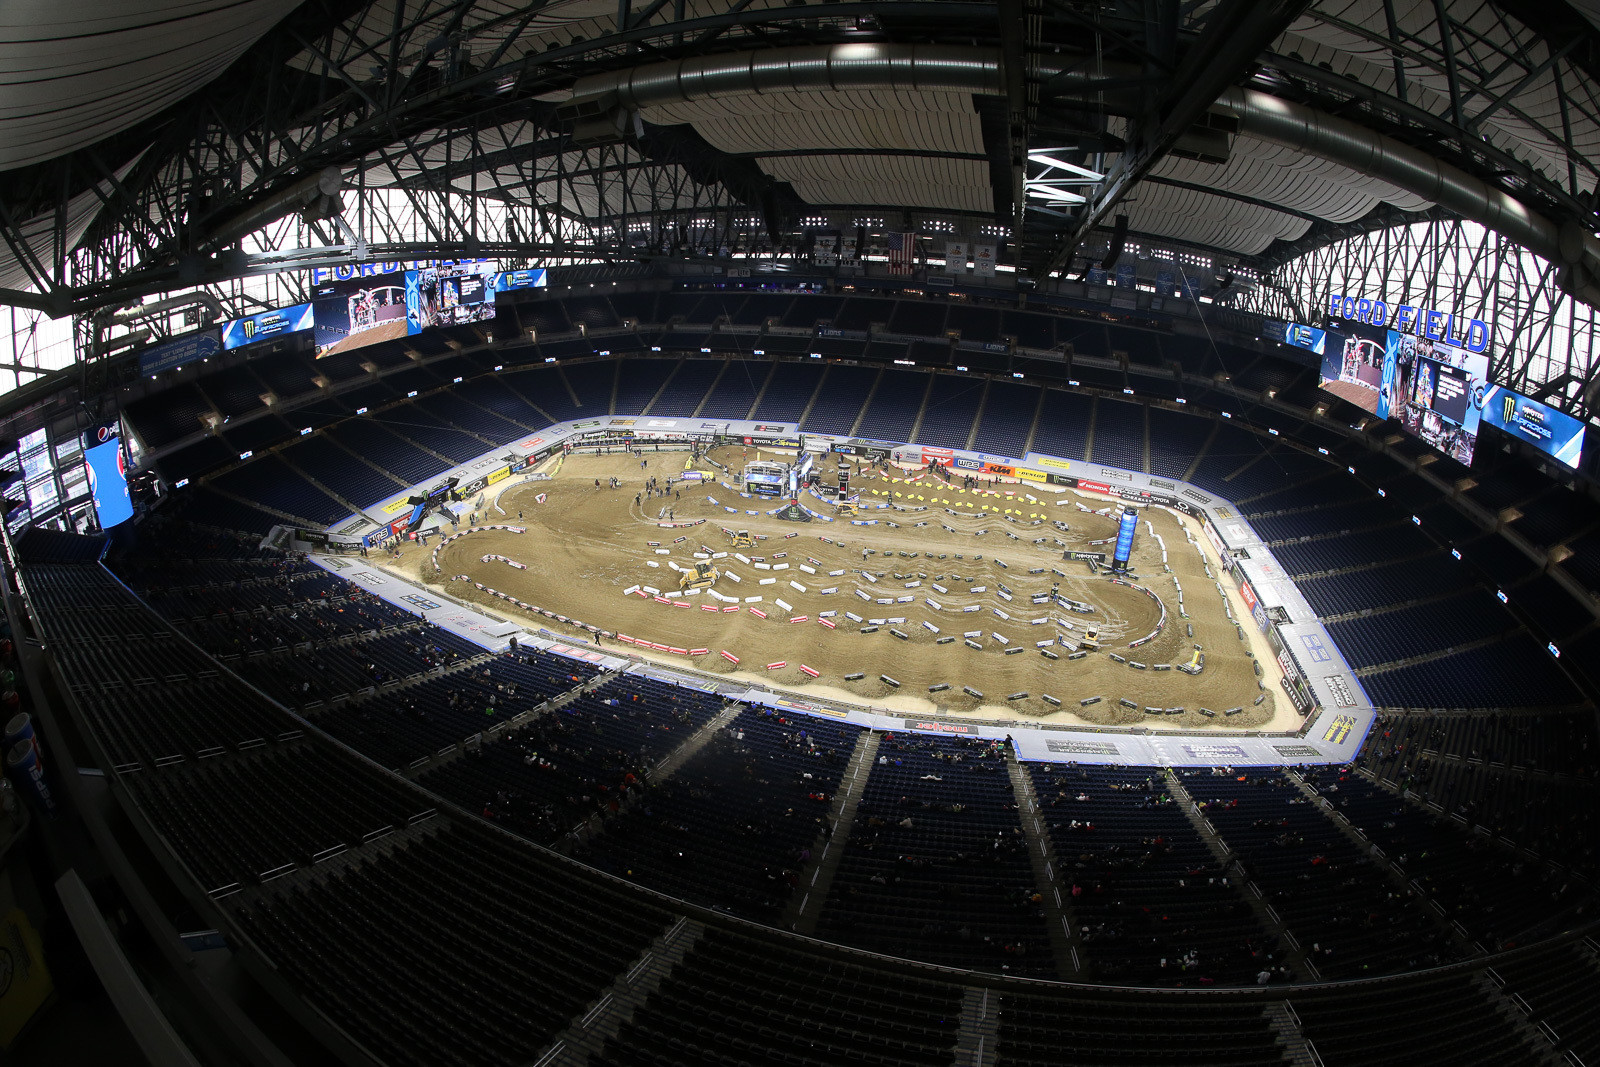 It's been a couple years since we were here in Detroit, and the biggest difference is that the track doesn't make the nod to the old days at the Silverdome, since there's no section of the track that goes into the stands.